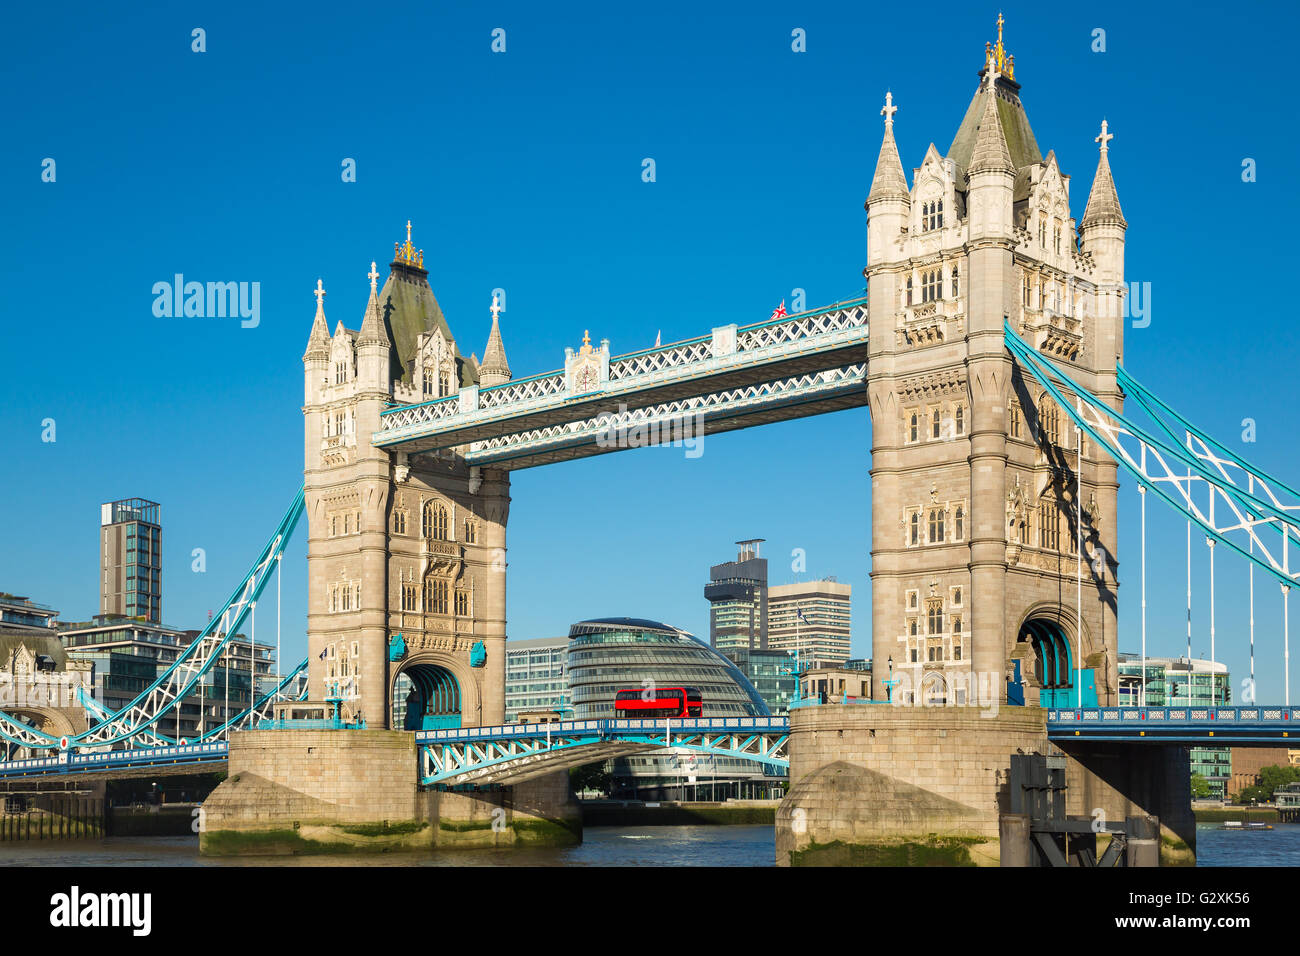 Tower Bridge von London mit blauem Himmel Stockbild